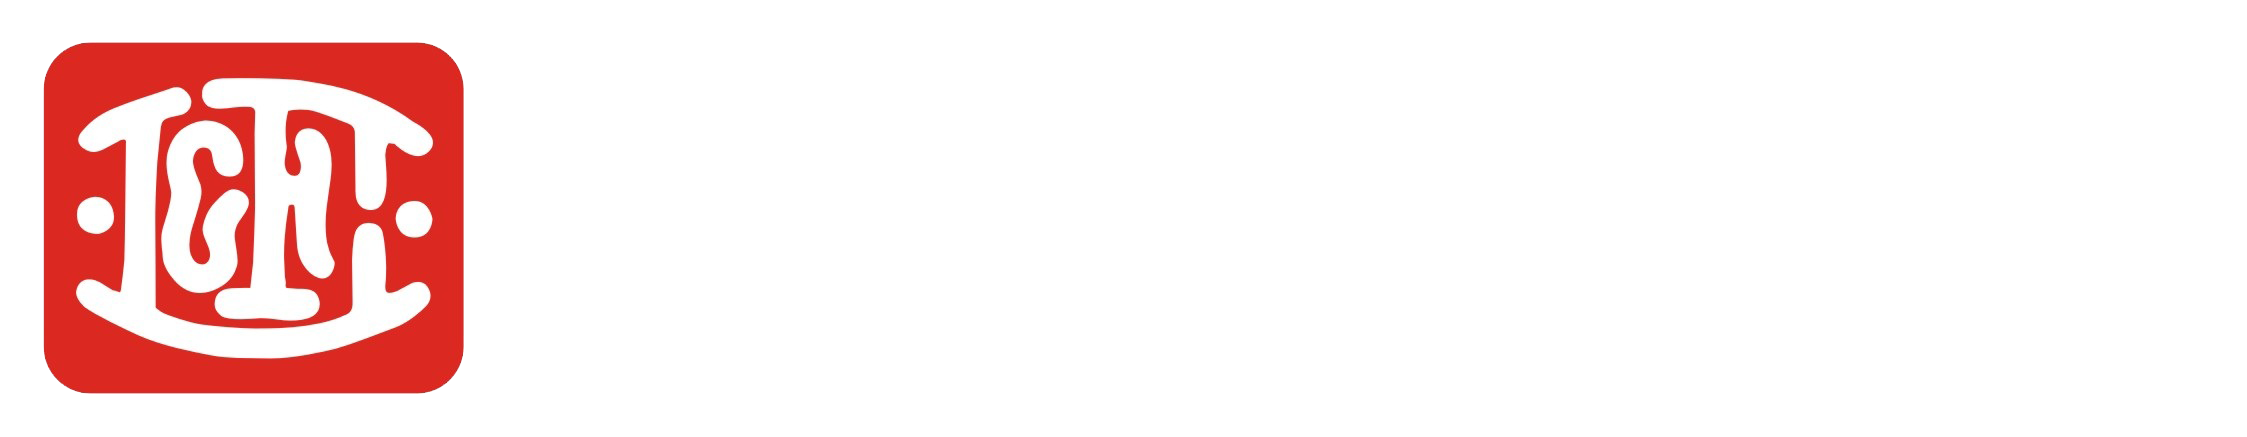 Li_and_Fung_logo.png